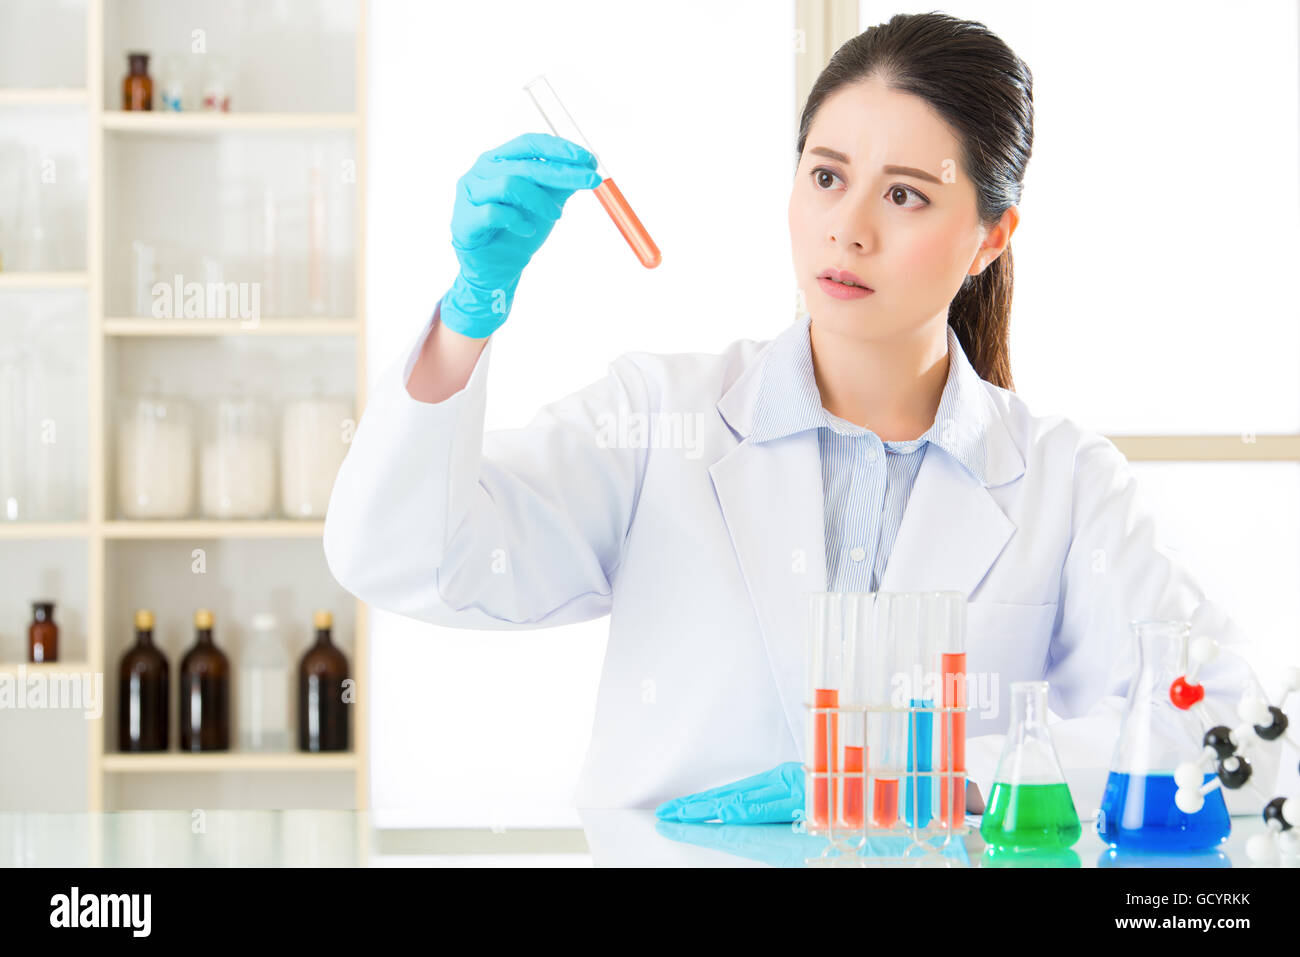 Asian female forensic scientist braving new medical frontiers on chemicals in laboratory - Stock Image